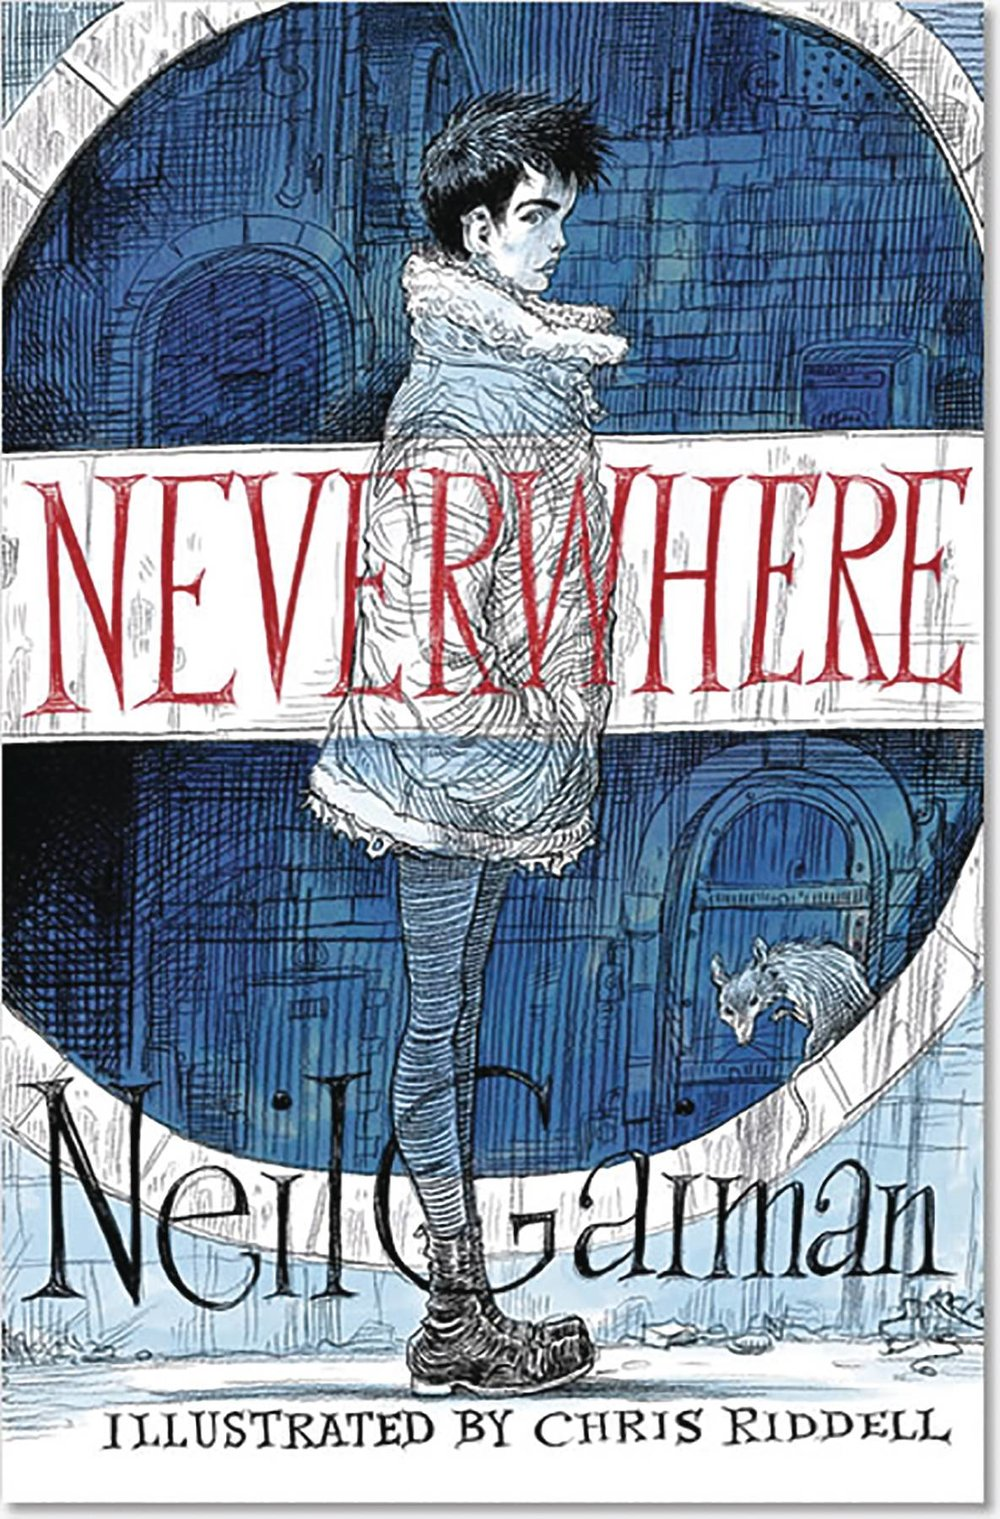 NEIL GAIMAN NEVERWHERE ILLUSTRATED HC ED.jpg